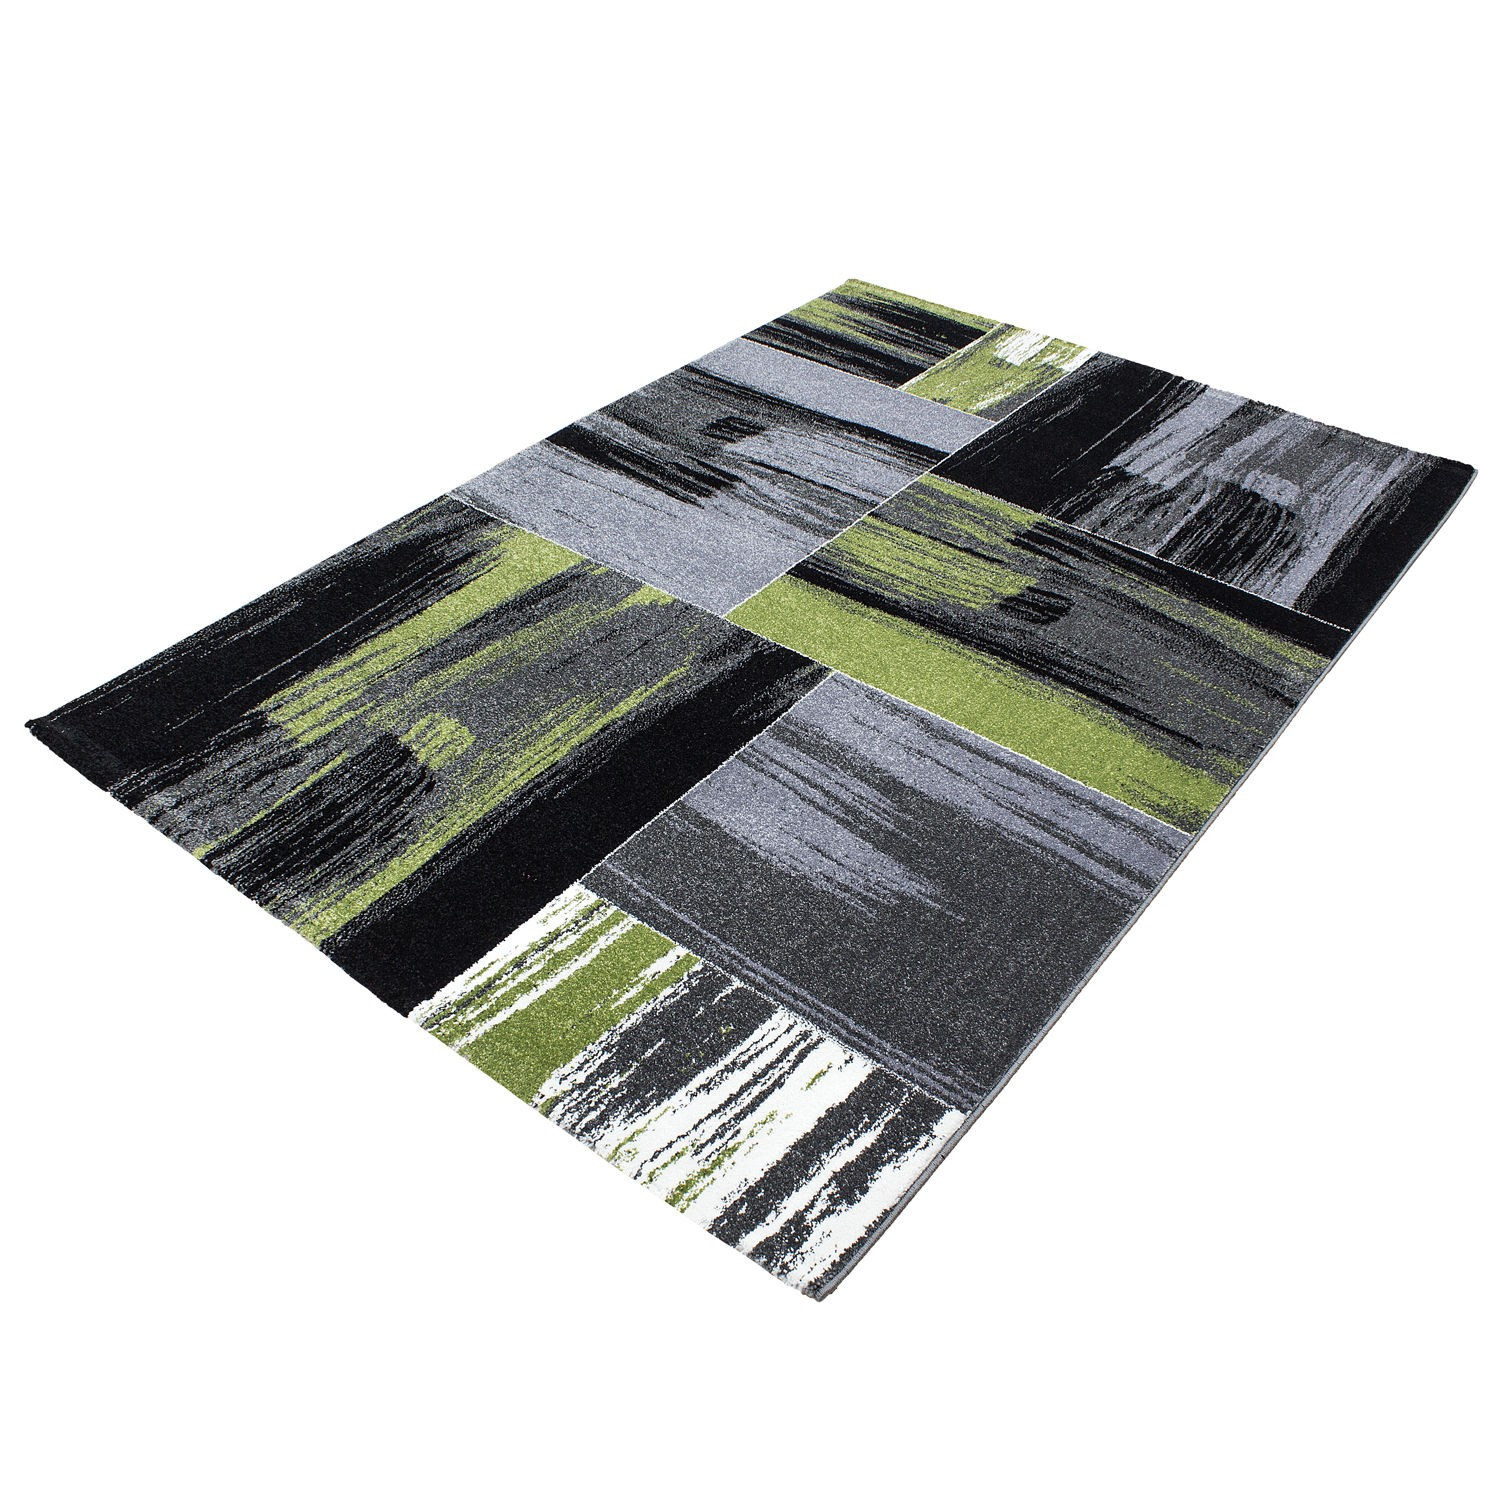 Grand Tapis Salon Grand Tapis Pas Cher Maison Design Wiblia